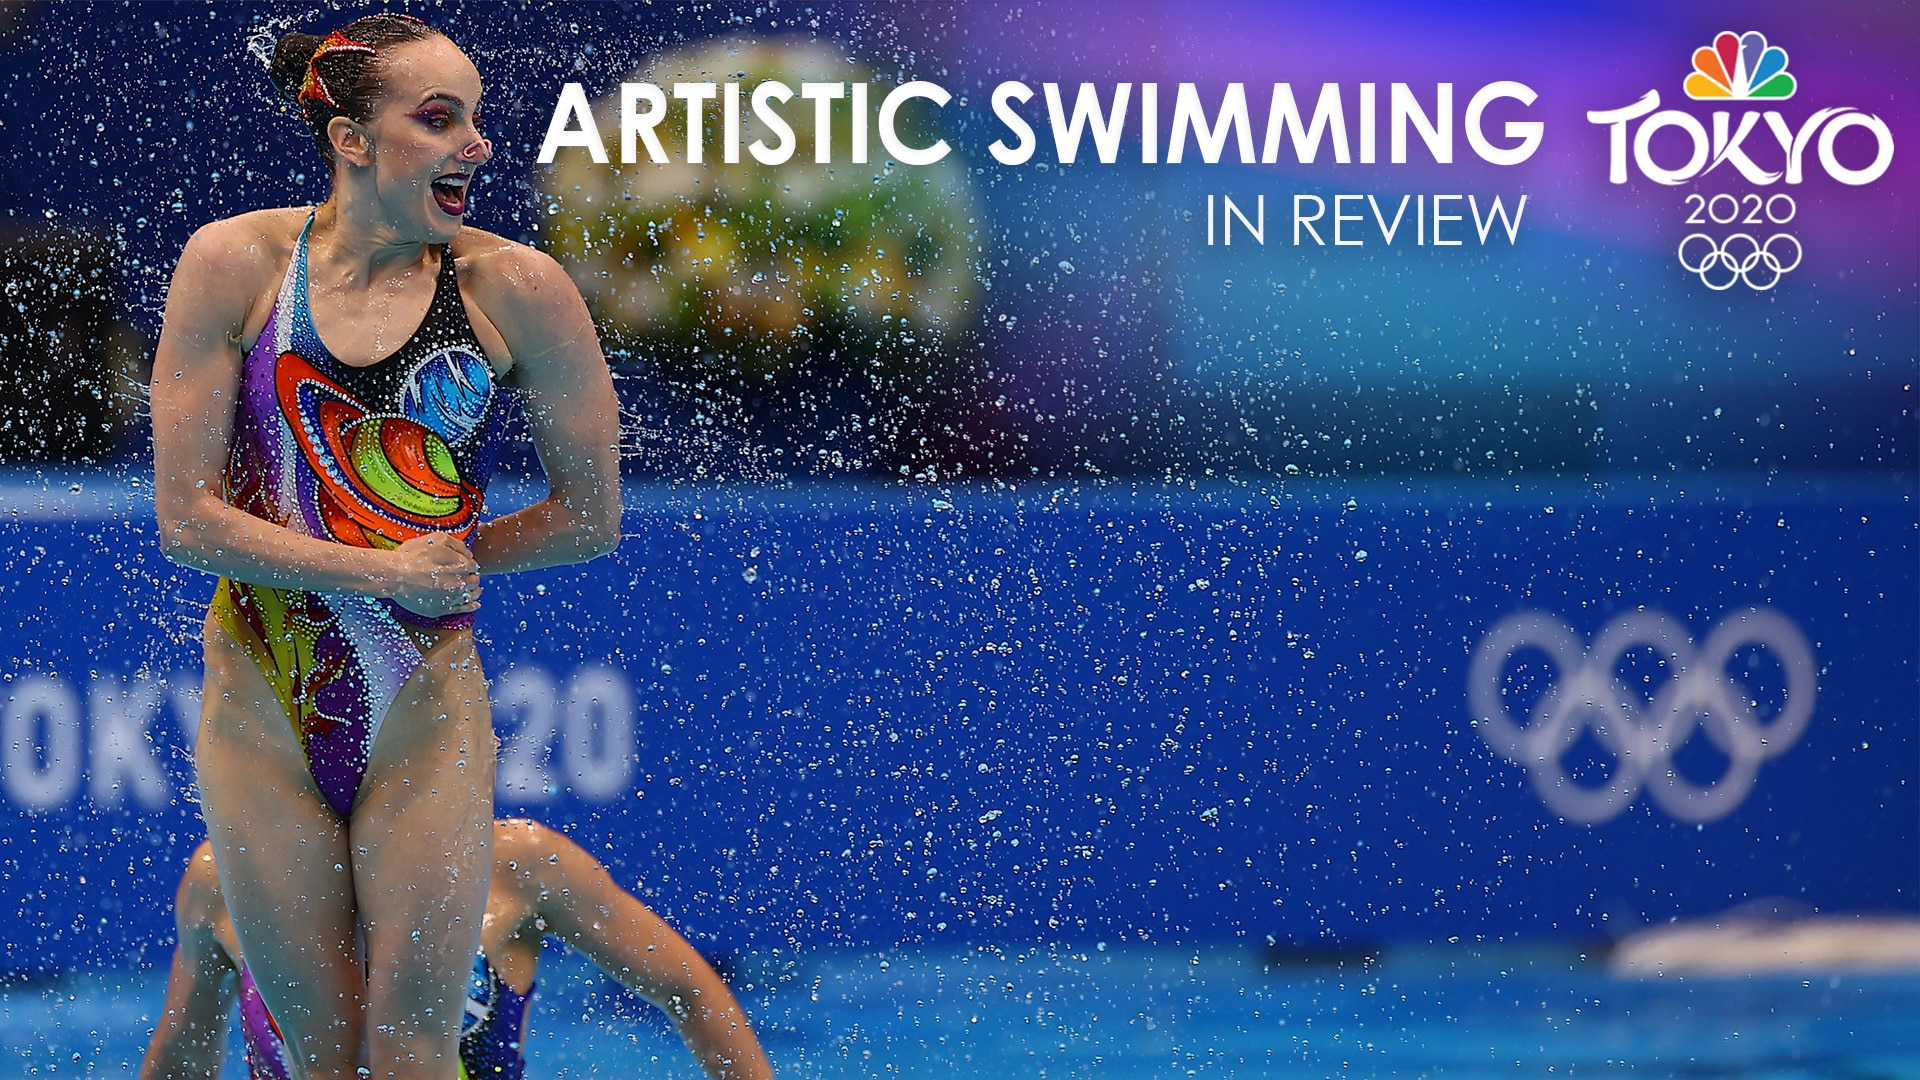 Image for Tokyo Olympics artistic swimming in review: ROC and Romashina reign supreme, again